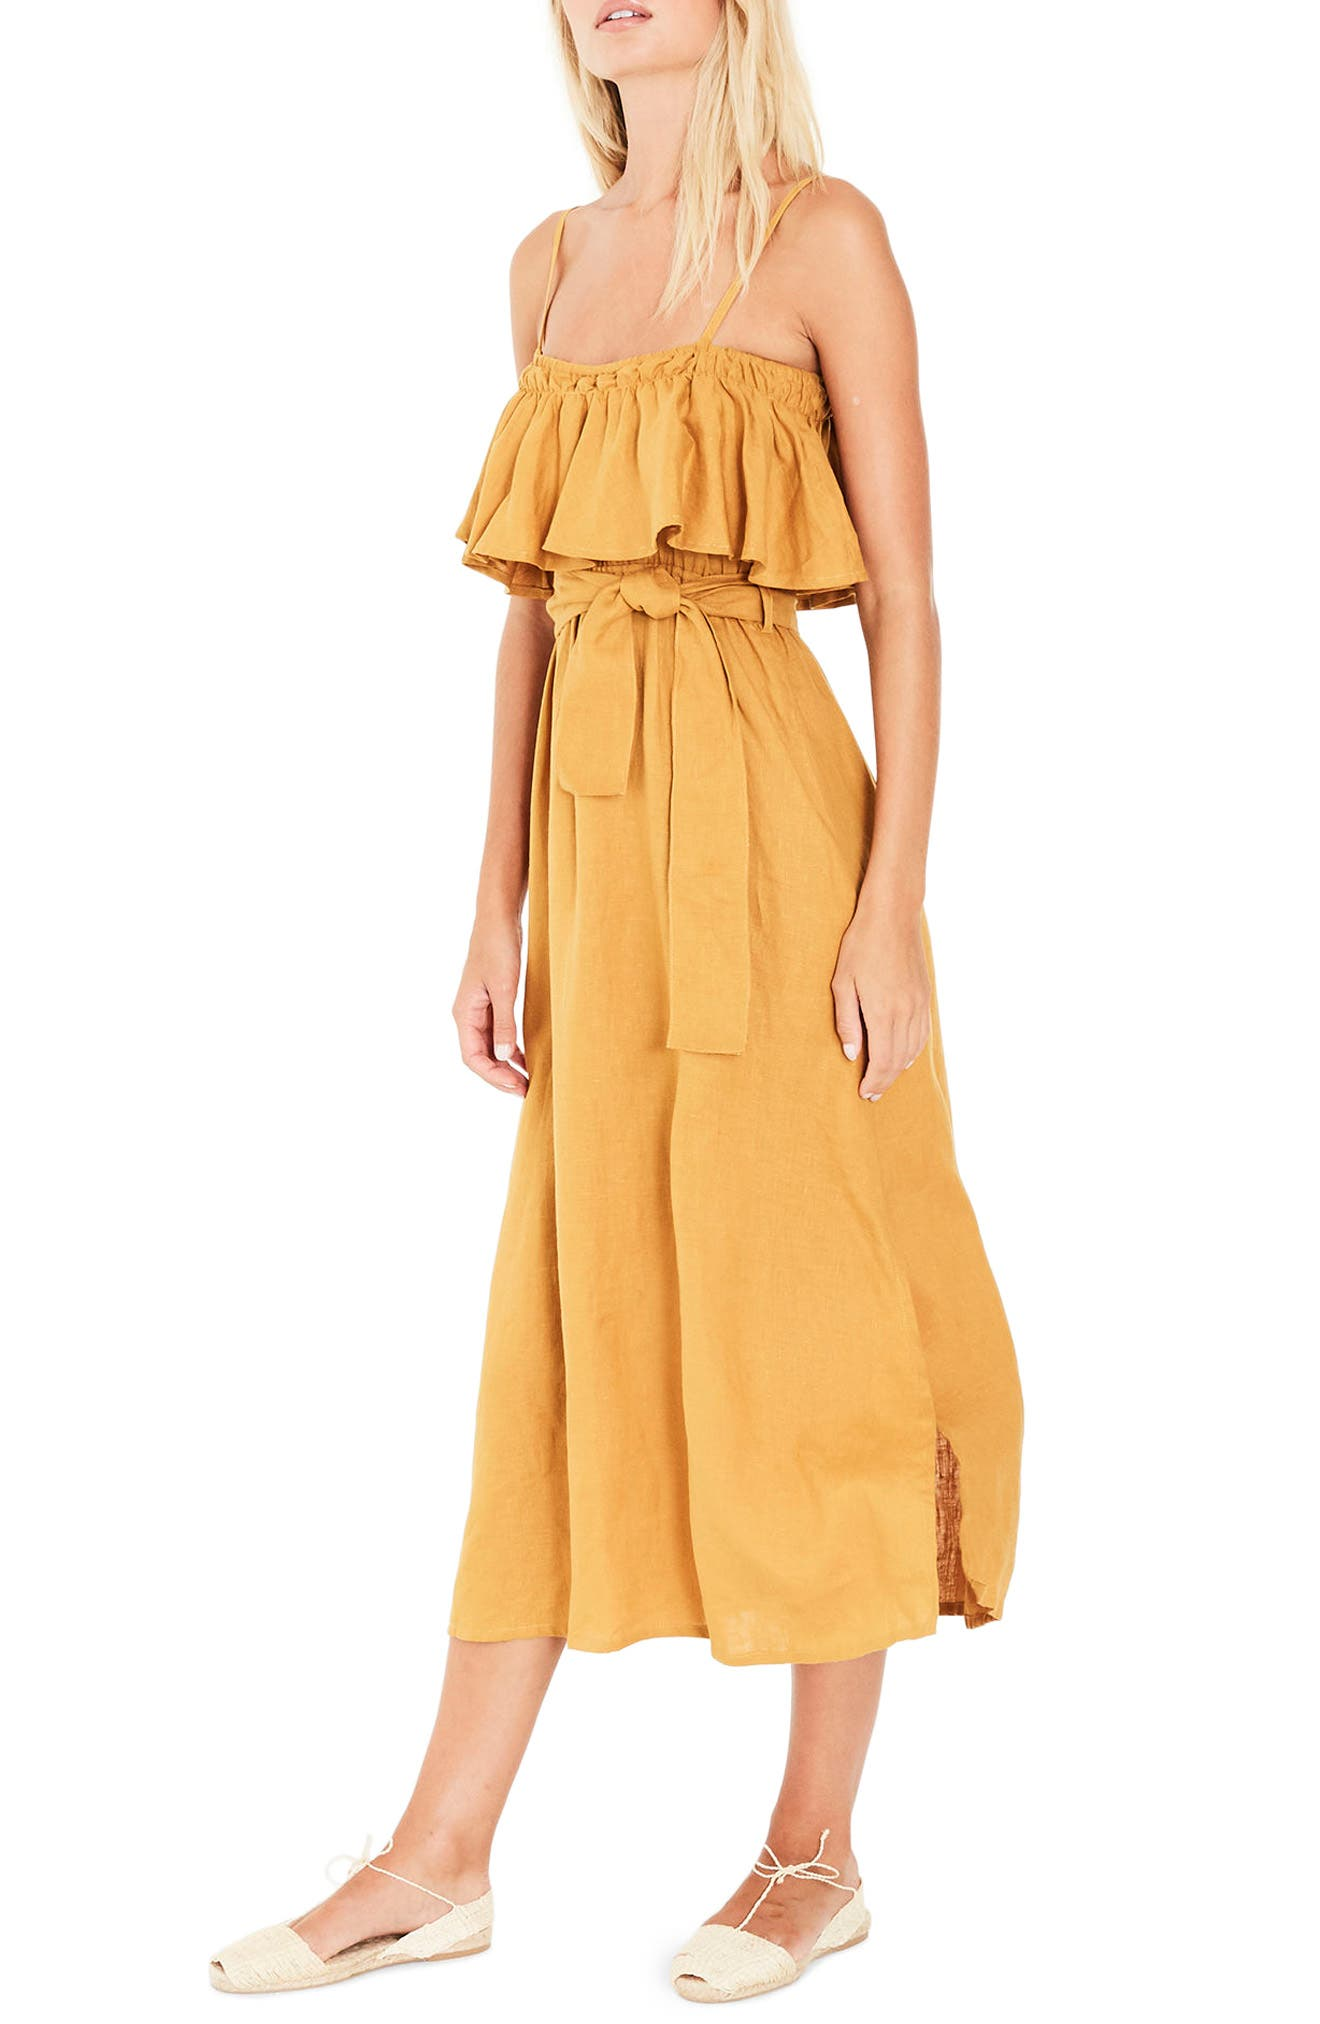 Santo Linen Midi Dress,                             Alternate thumbnail 3, color,                             PLAIN MARIGOLD